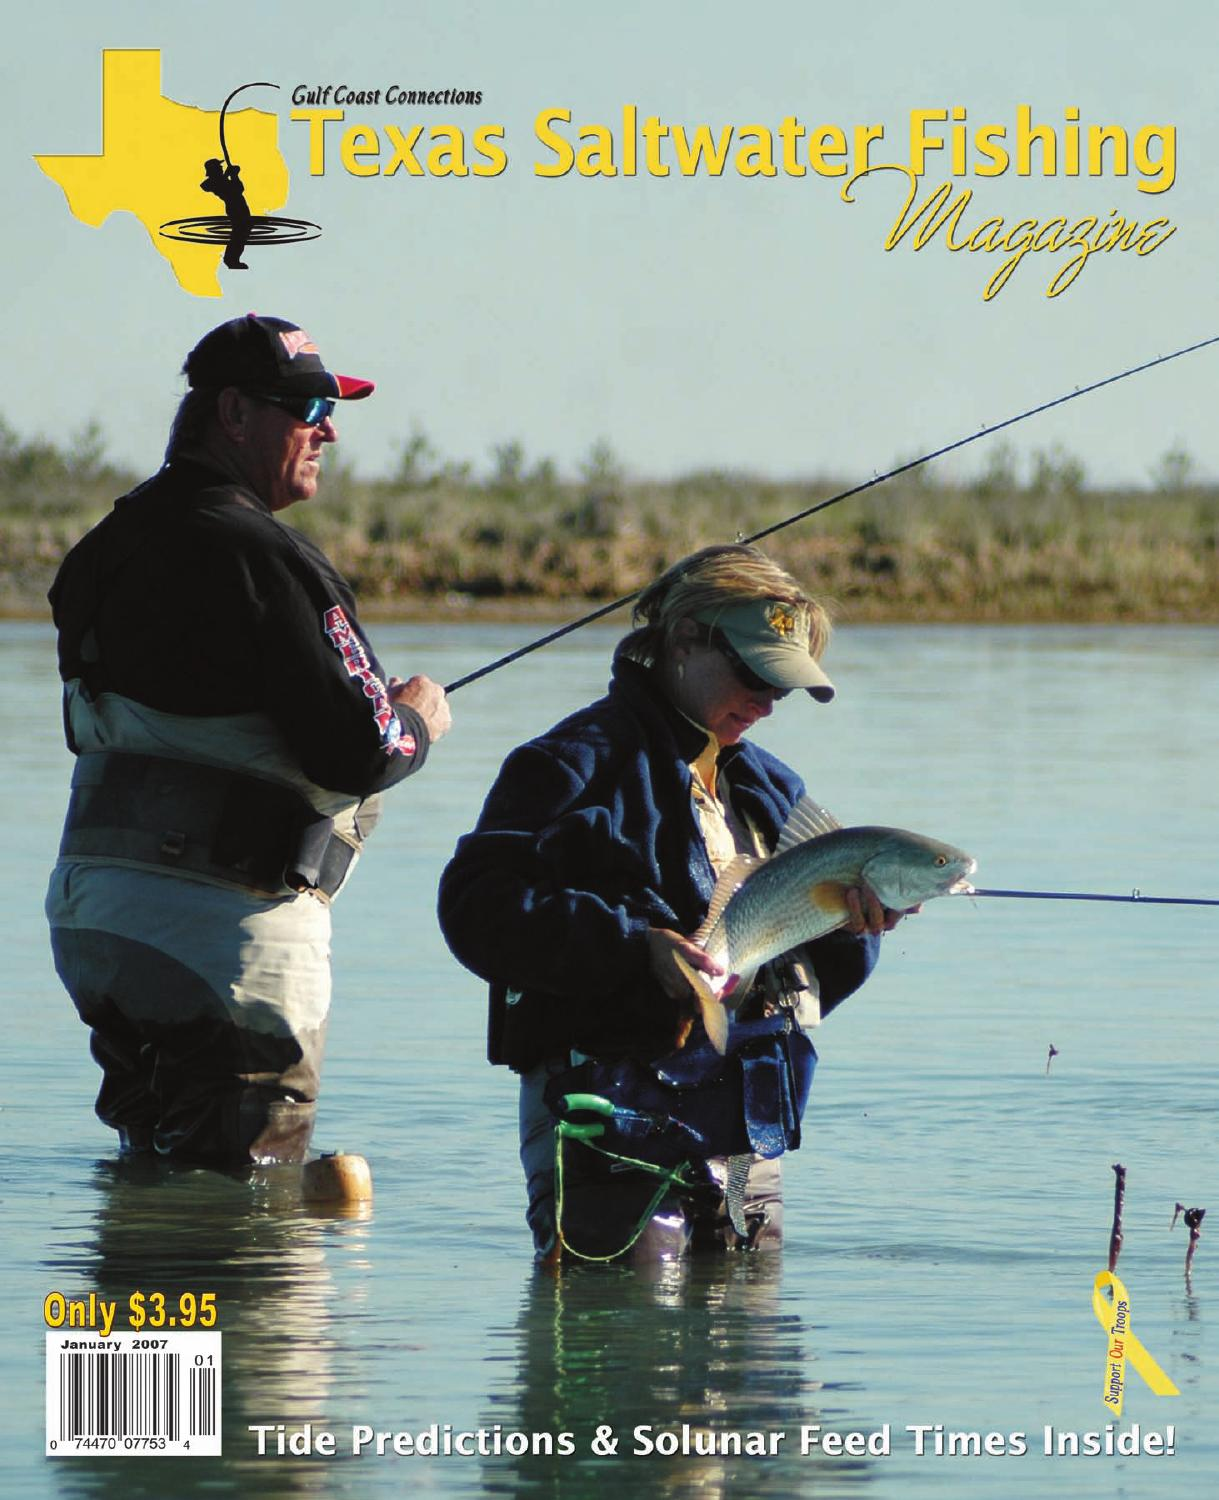 January 2007 by texas salwater fishing magazine issuu for Texas saltwater fishing magazine